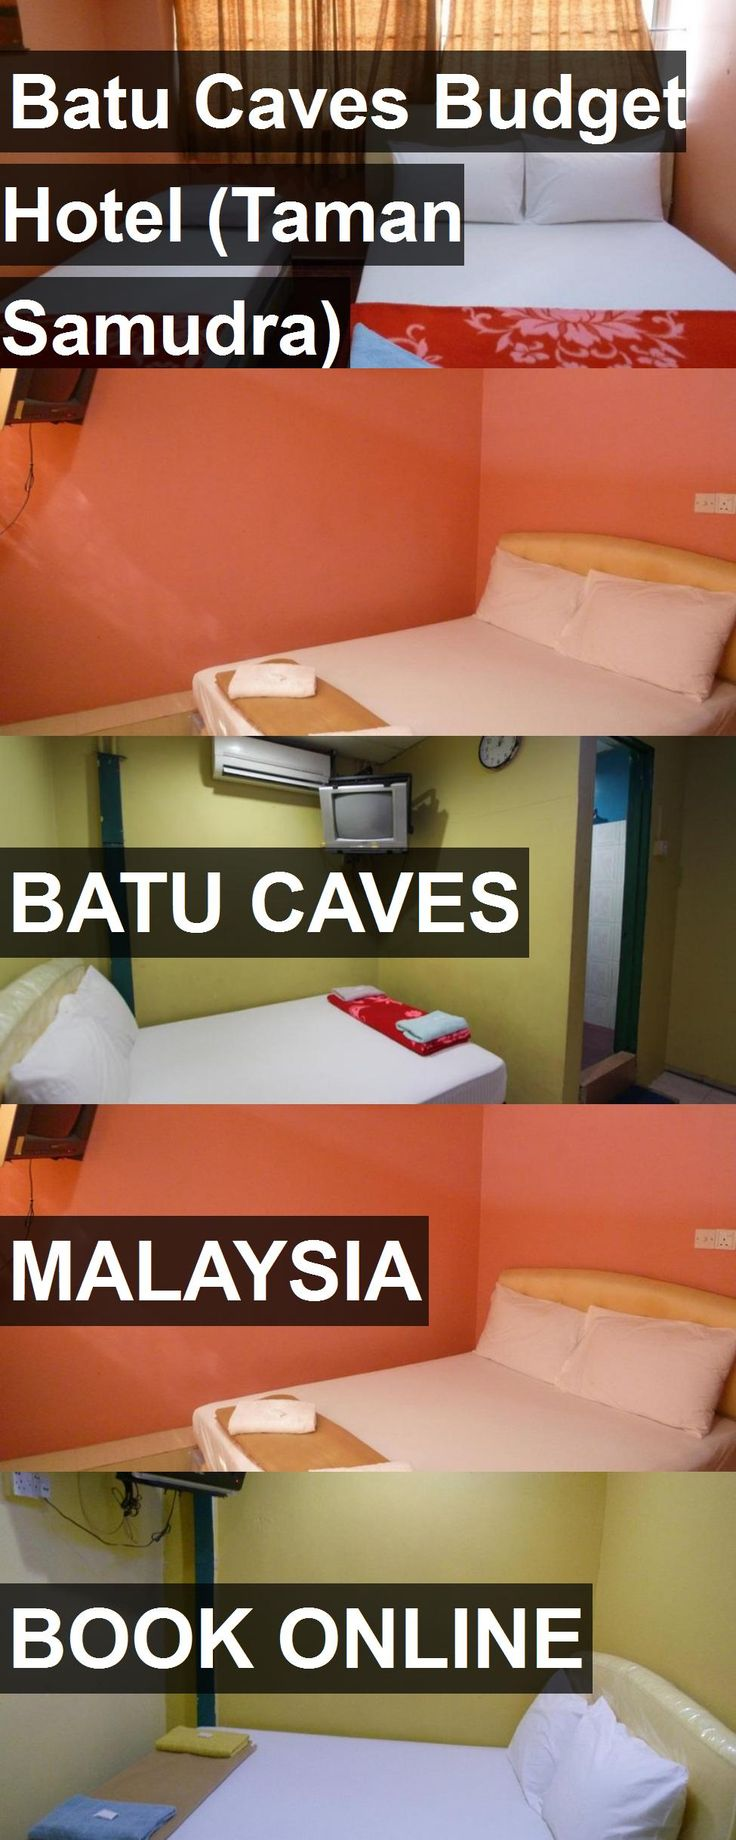 Batu Caves Budget Hotel (Taman Samudra) in Batu Caves, Malaysia. For more information, photos, reviews and best prices please follow the link. #Malaysia #BatuCaves #travel #vacation #hotel